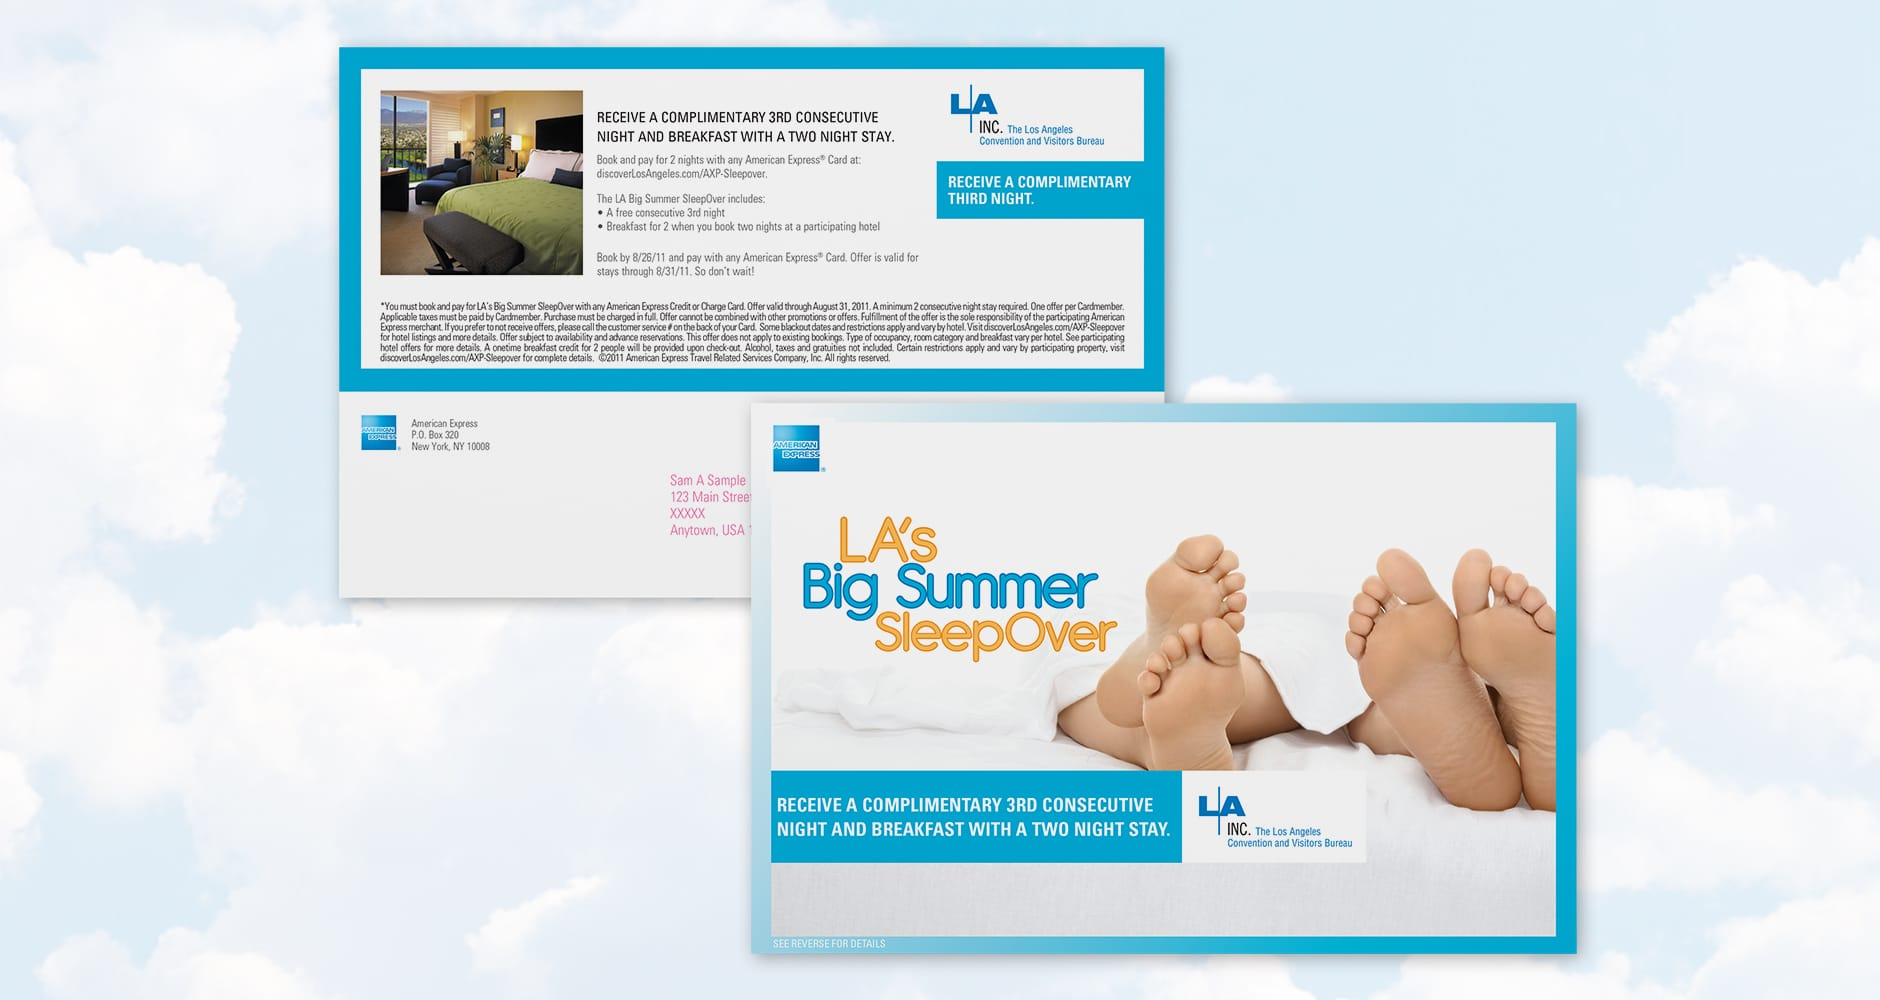 big summer sleepover AMEX extra night postcard